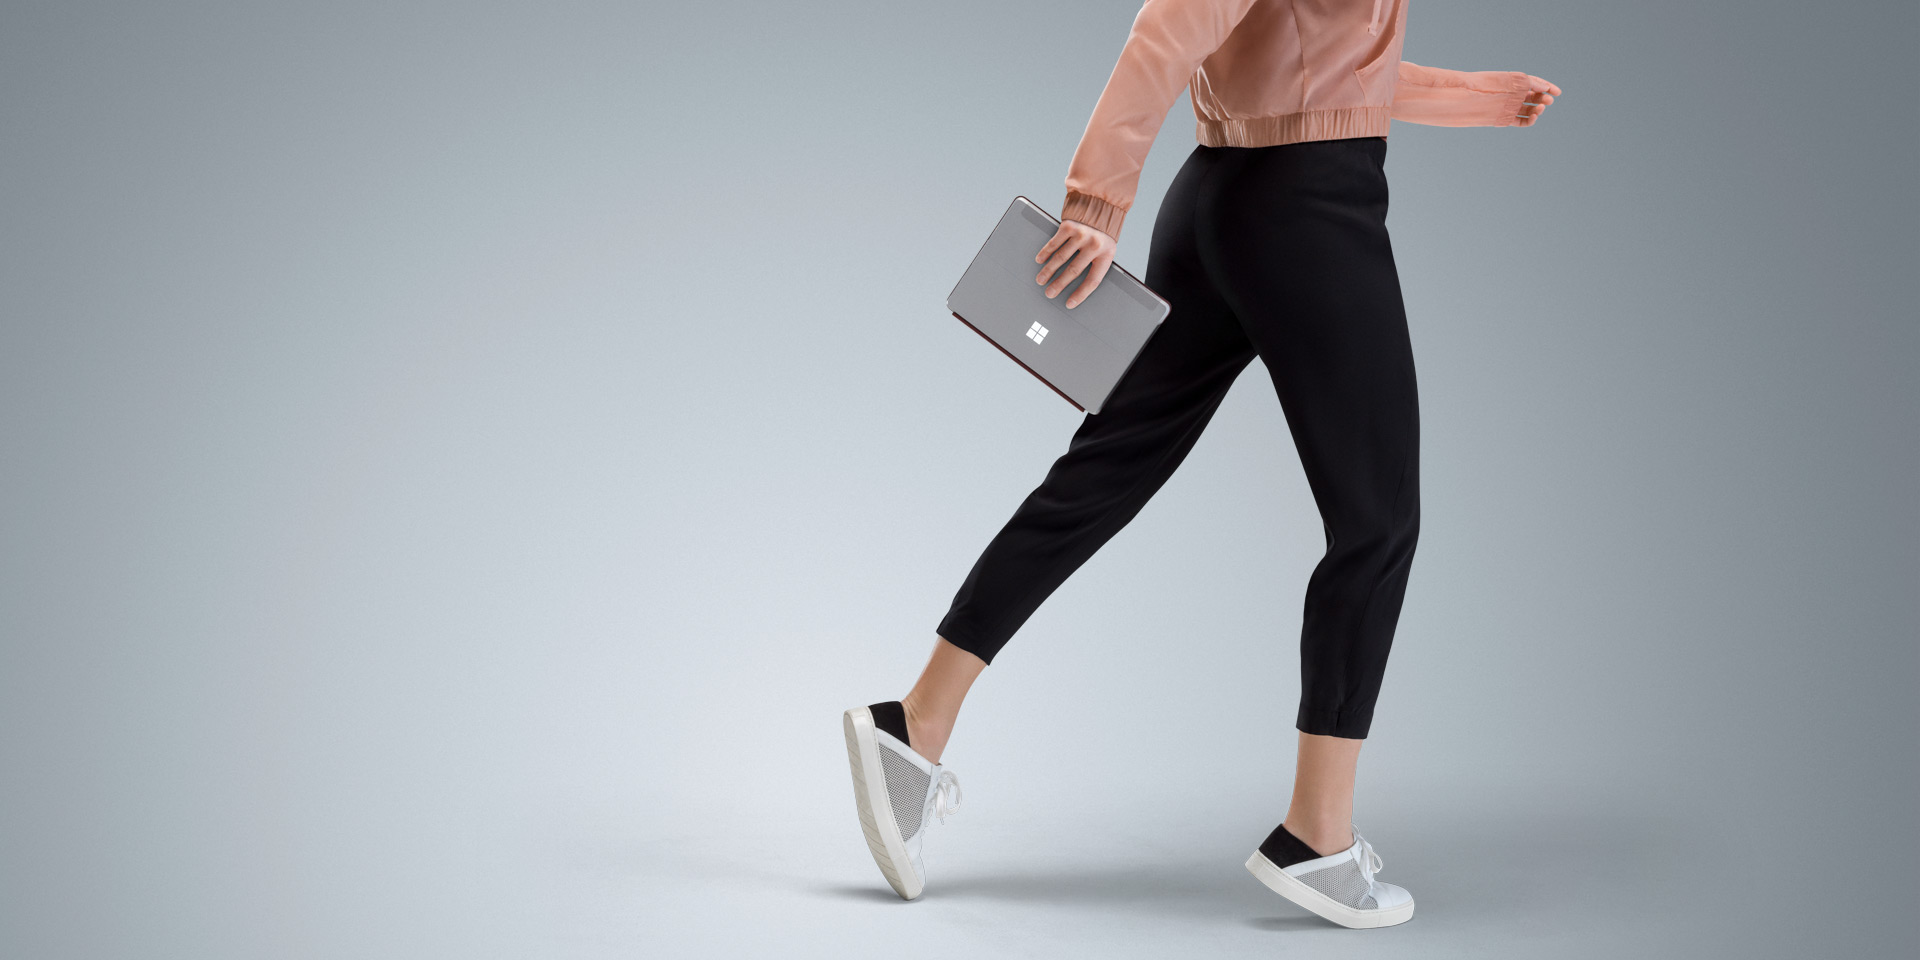 Surface Go in a woman's hand as she walks